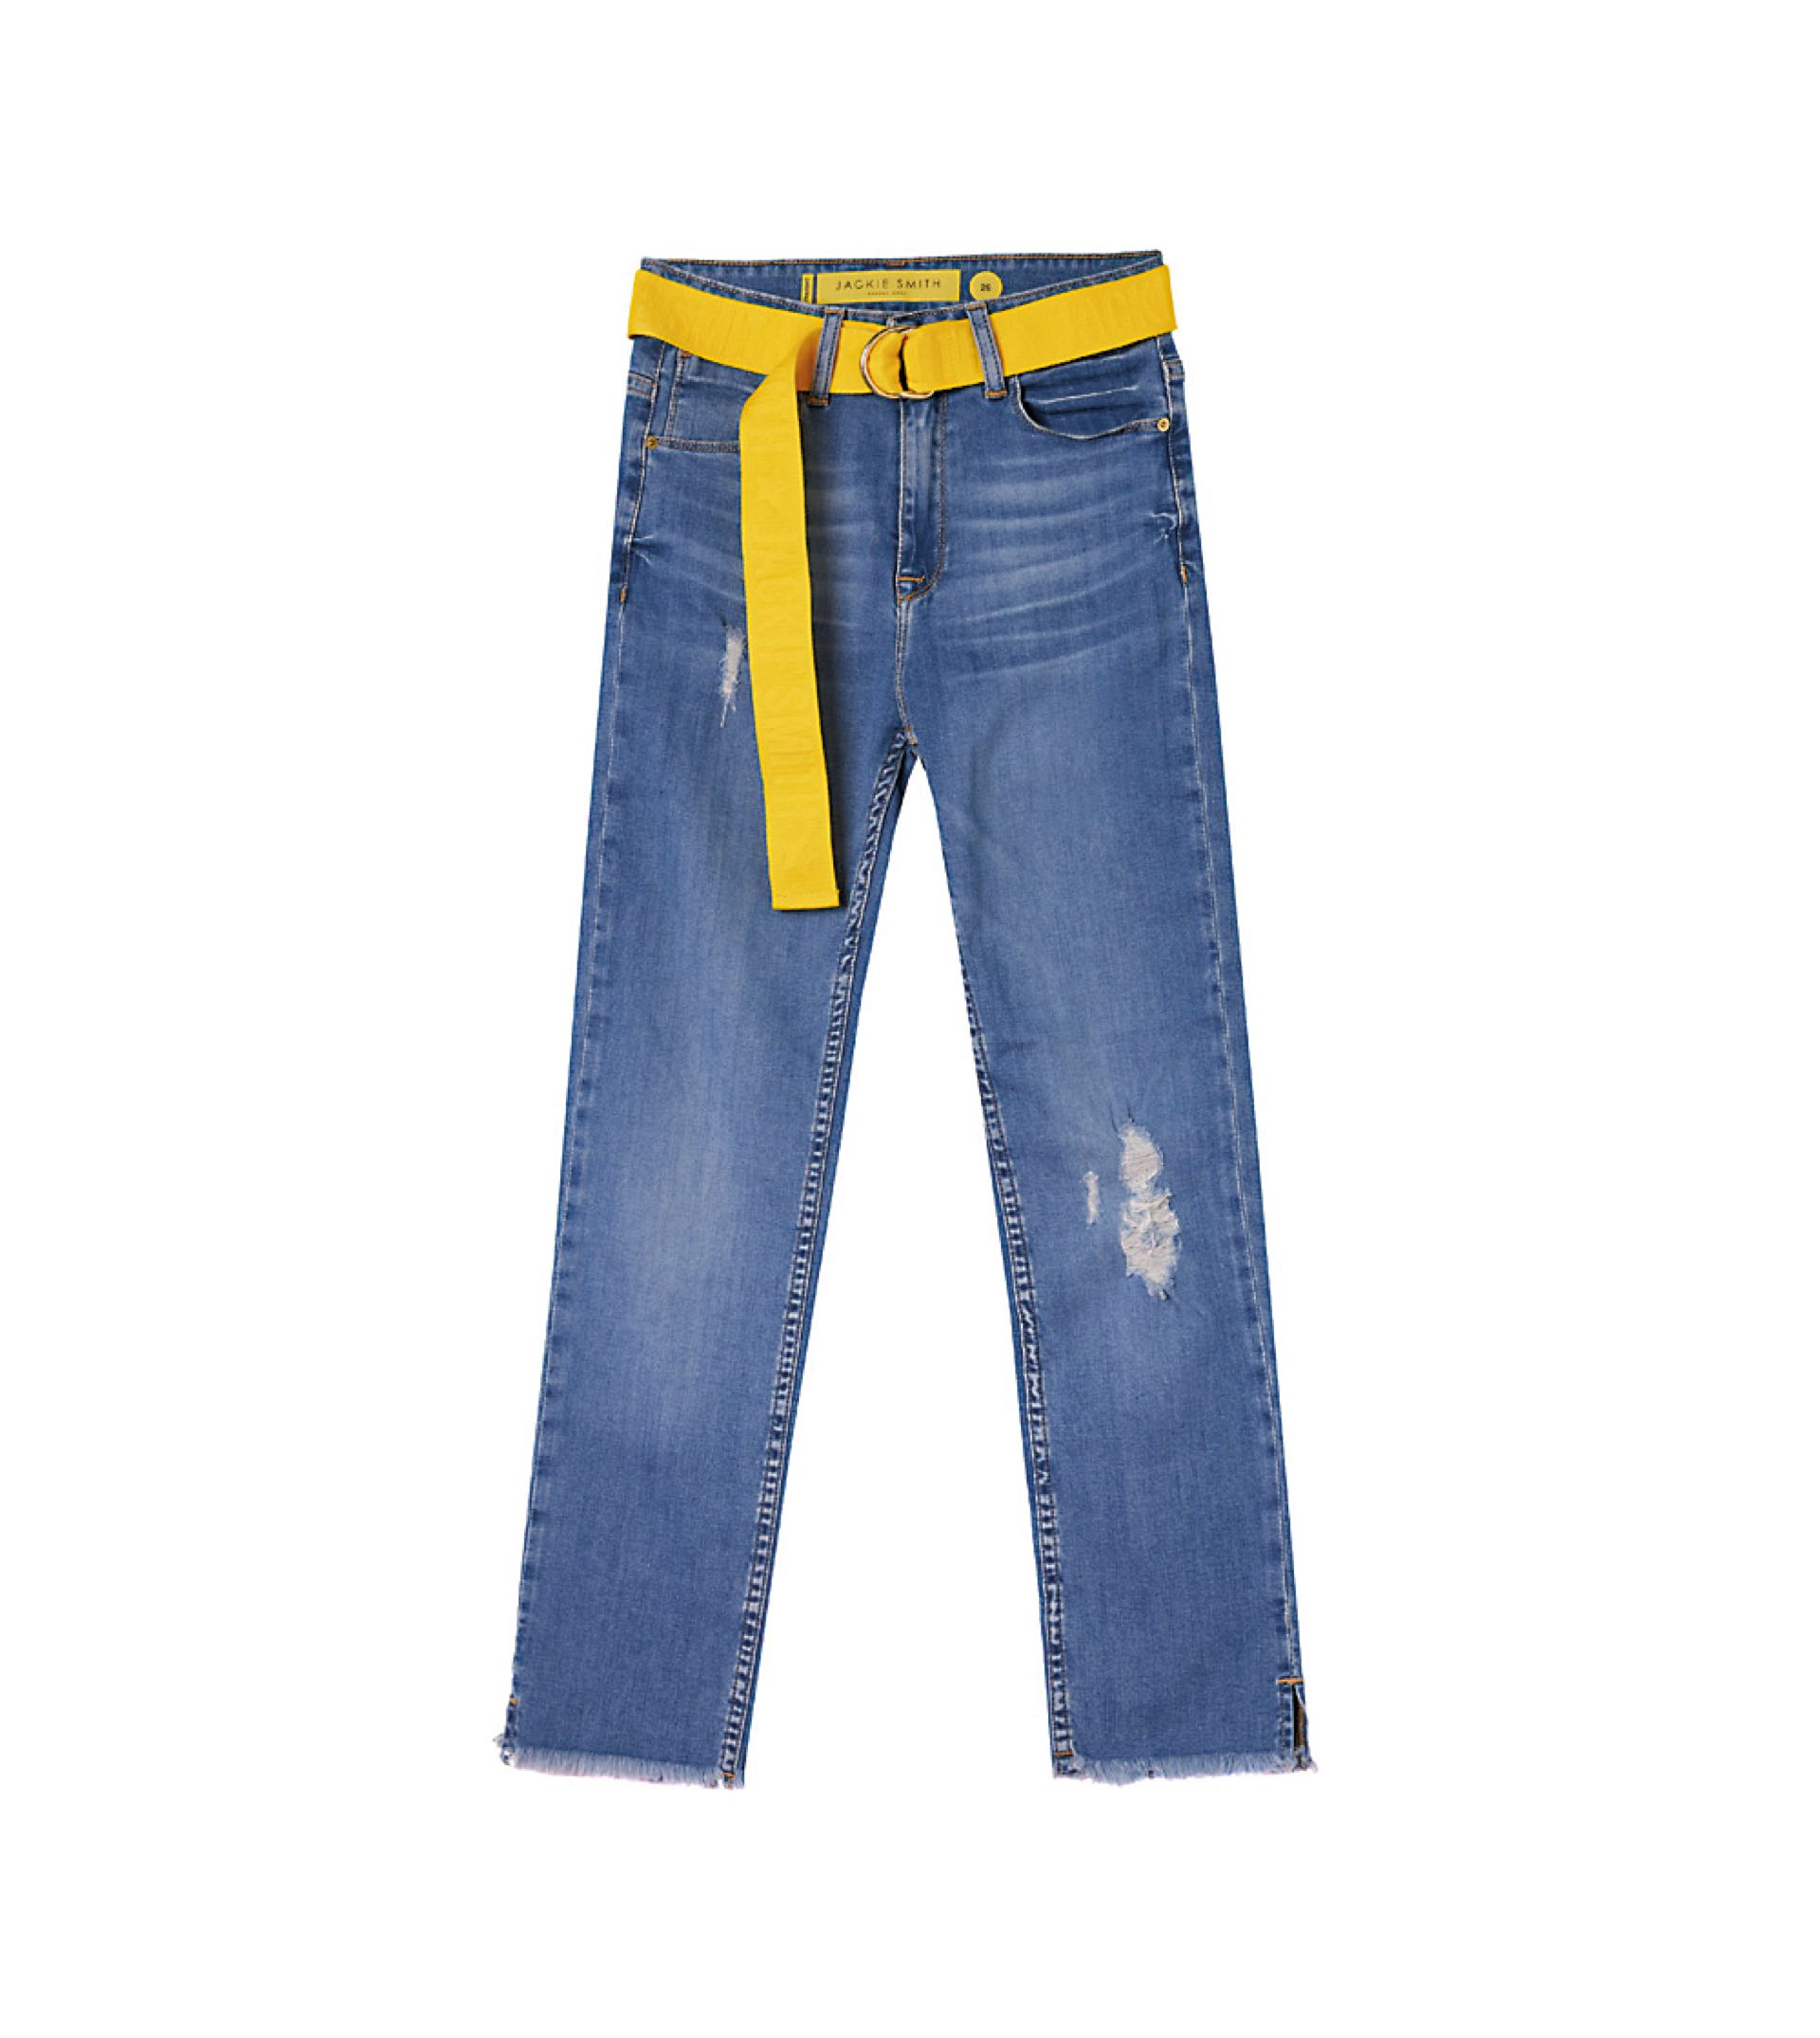 Jean con cinturón ($ 3.990, Jackie Smith). Botas de gamuza estampadas ($ 7.490, Jackie Smith).